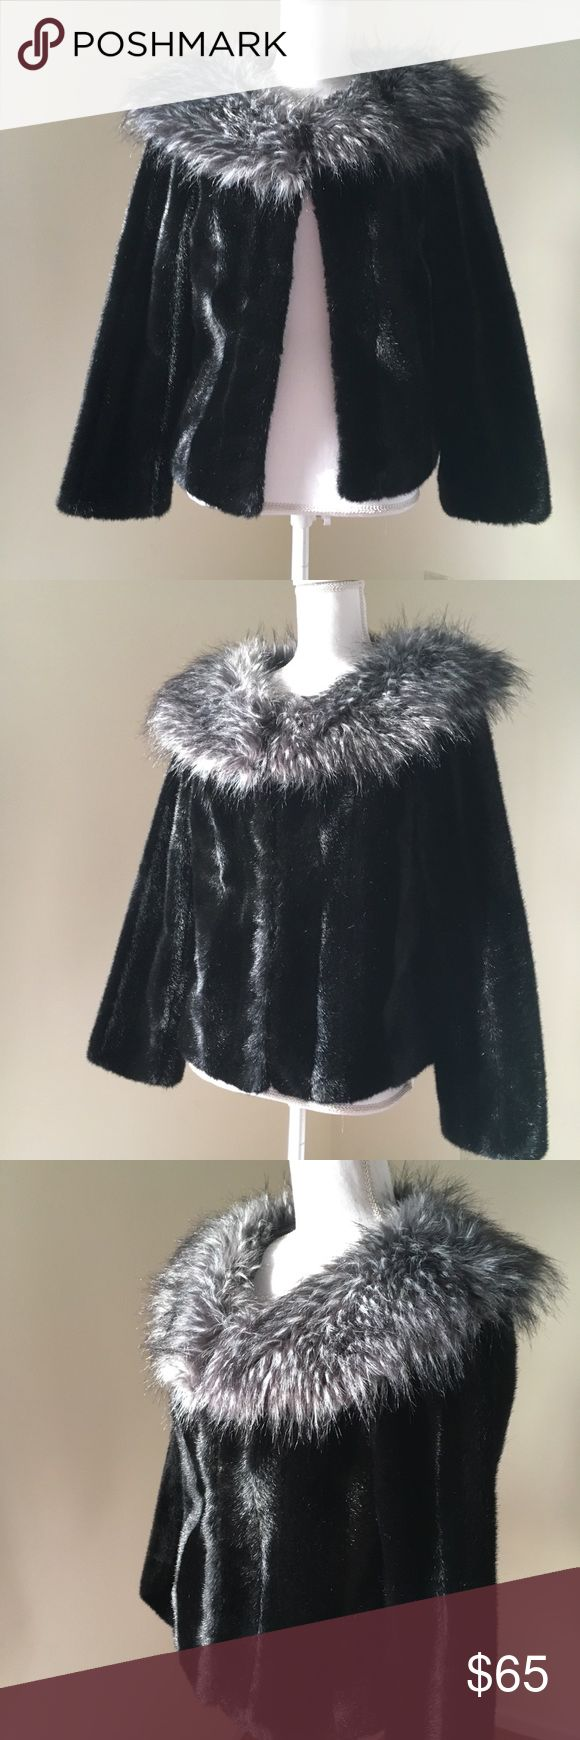 Nine West Black Faux Fur Cropped Cape Jacket Small Nine West Black Faux Fur Cropped Cape Jacket Small Black Faux Fur Cropped Jacket Gorgeous and soft Black Faux mink fur cropped jacket with contrasting Faux Fox fur collar, size small. By Nine West. Hook and Eye Closure. $149 🎀Search my closet for your size 🎀BUNDLE and SAVE! 🎀REASONABLE offers WELCOME 🎀NO TRADES NO HOLDS 🎀Thank you for stopping by!❤️ Nine West Jackets & Coats